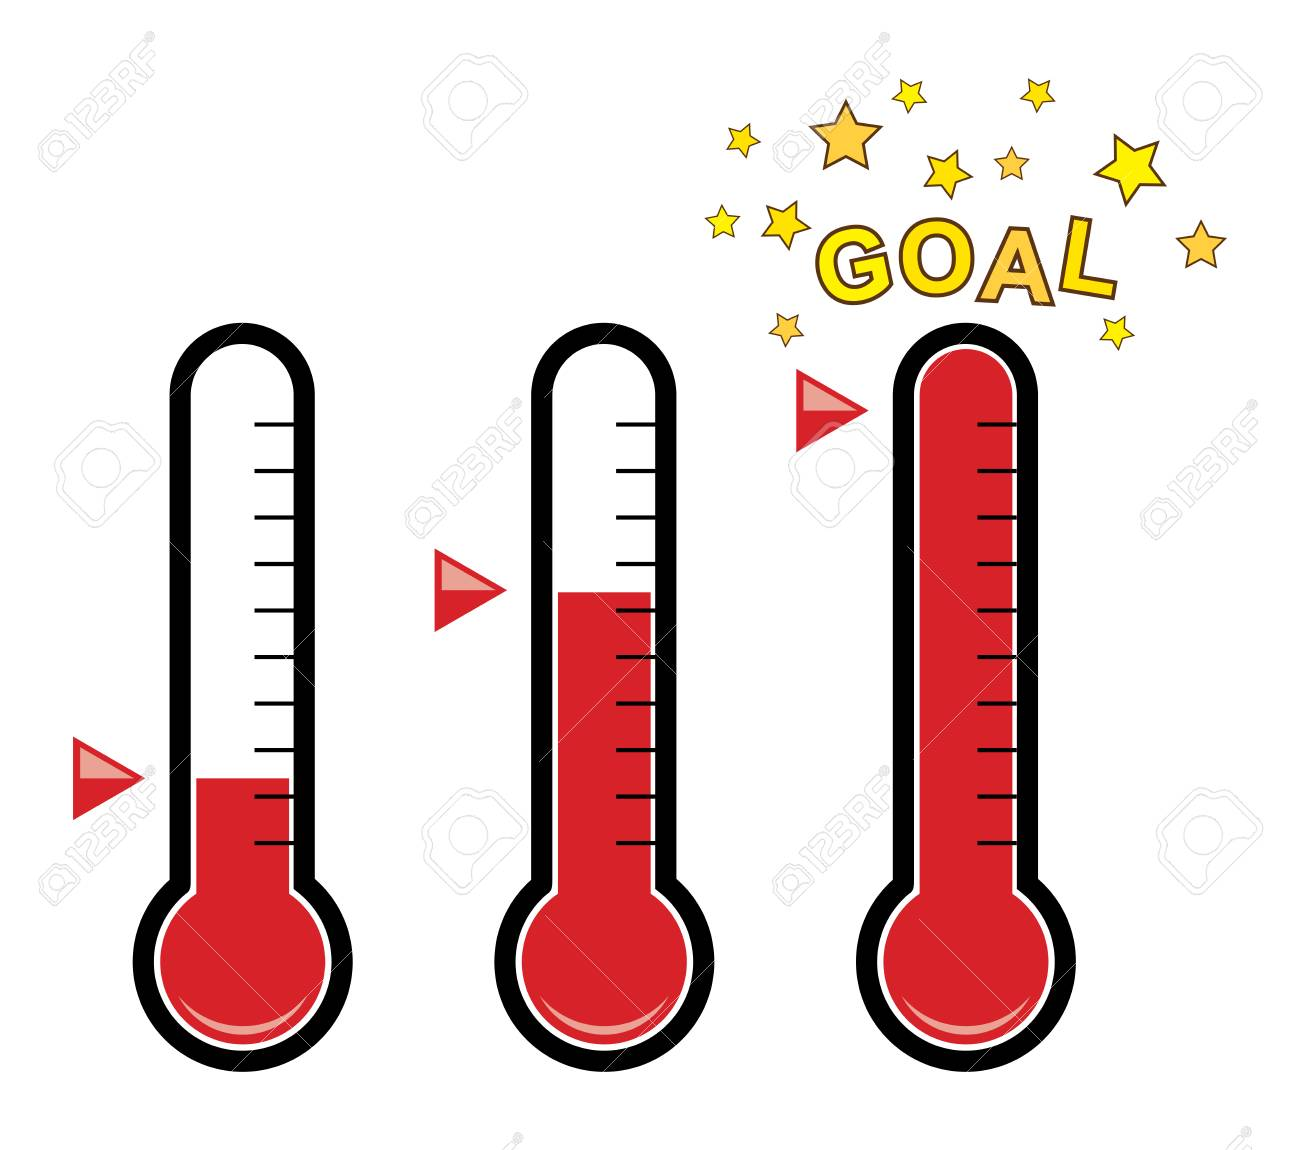 vector clipart set of goal thermometers at different levels with...